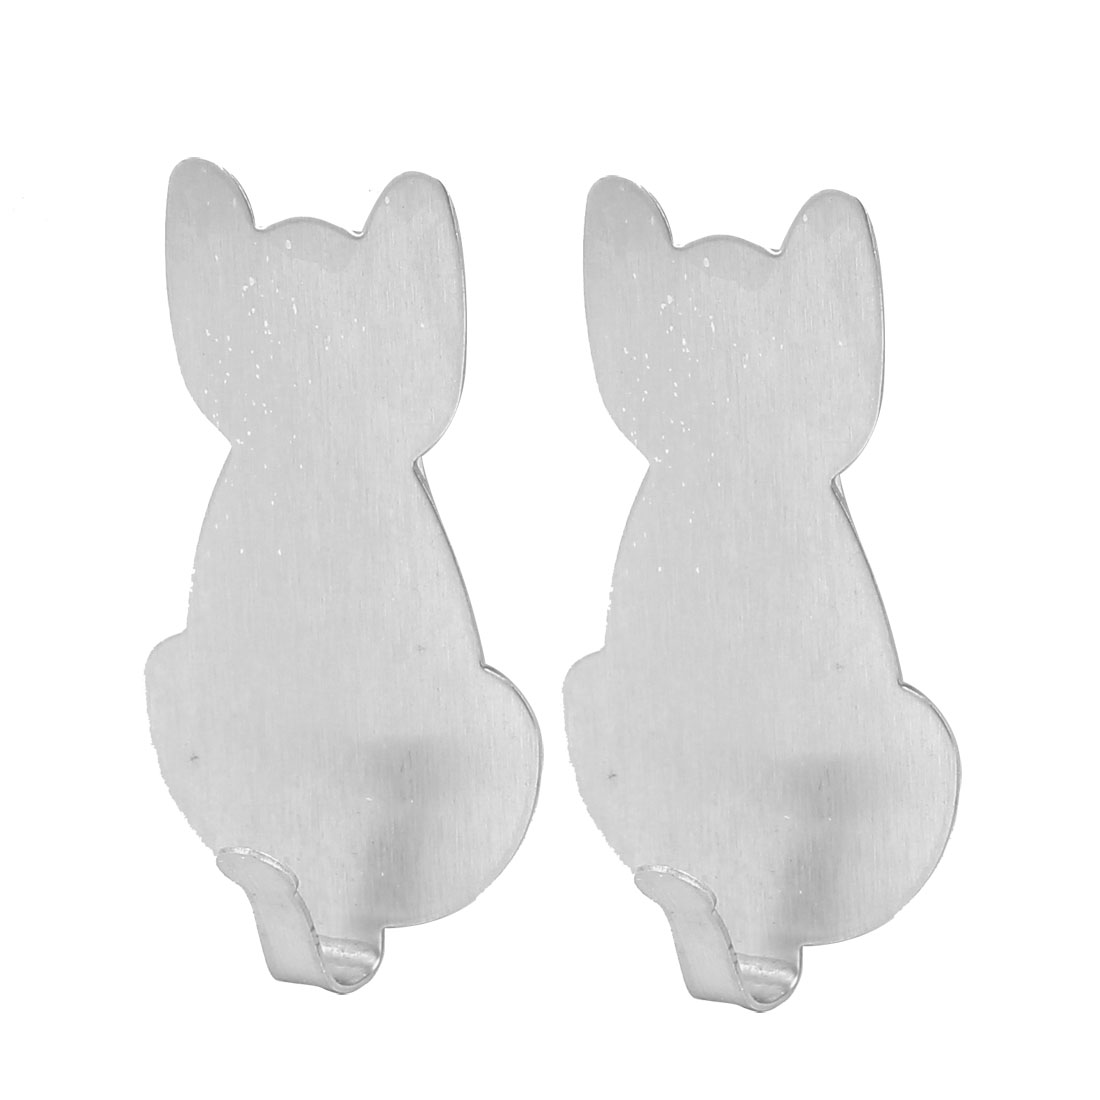 Household Kitchen Bathroom Wall Stainless Steel Cat Shaped Hanger Adhesive Hooks Silver Tone 2pcs